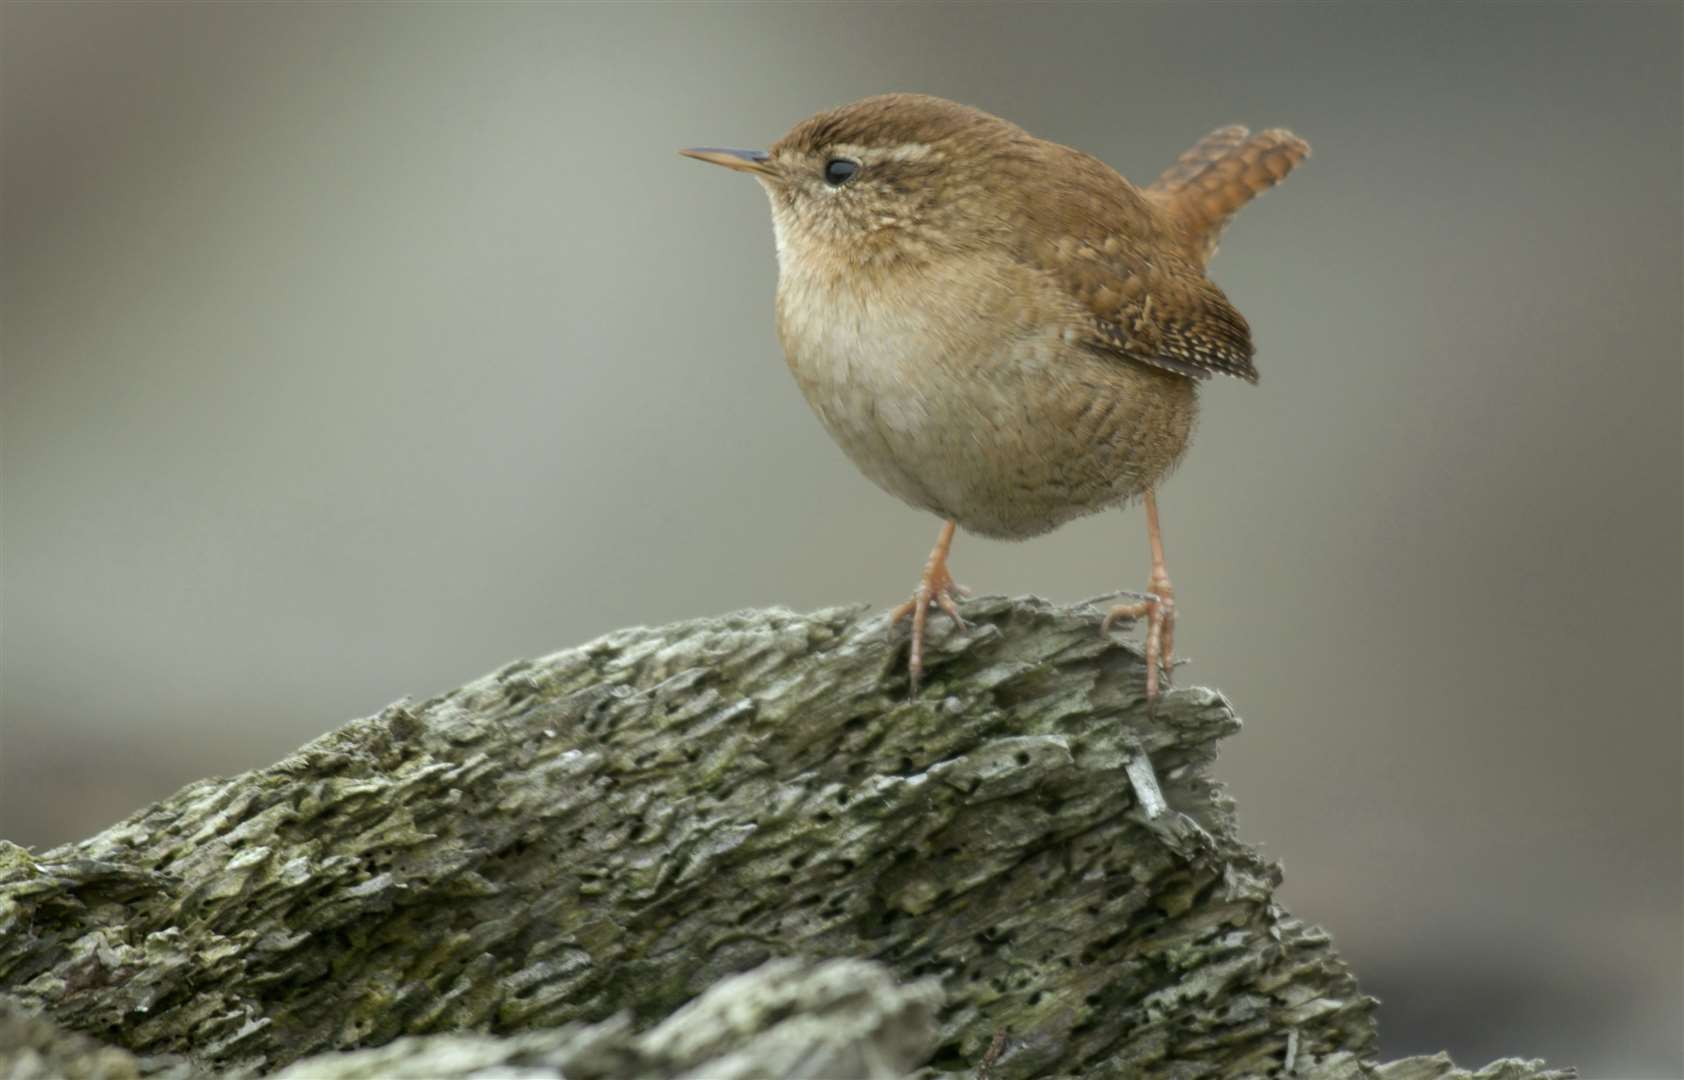 A wren perches on a tree stump Picture: RSPB